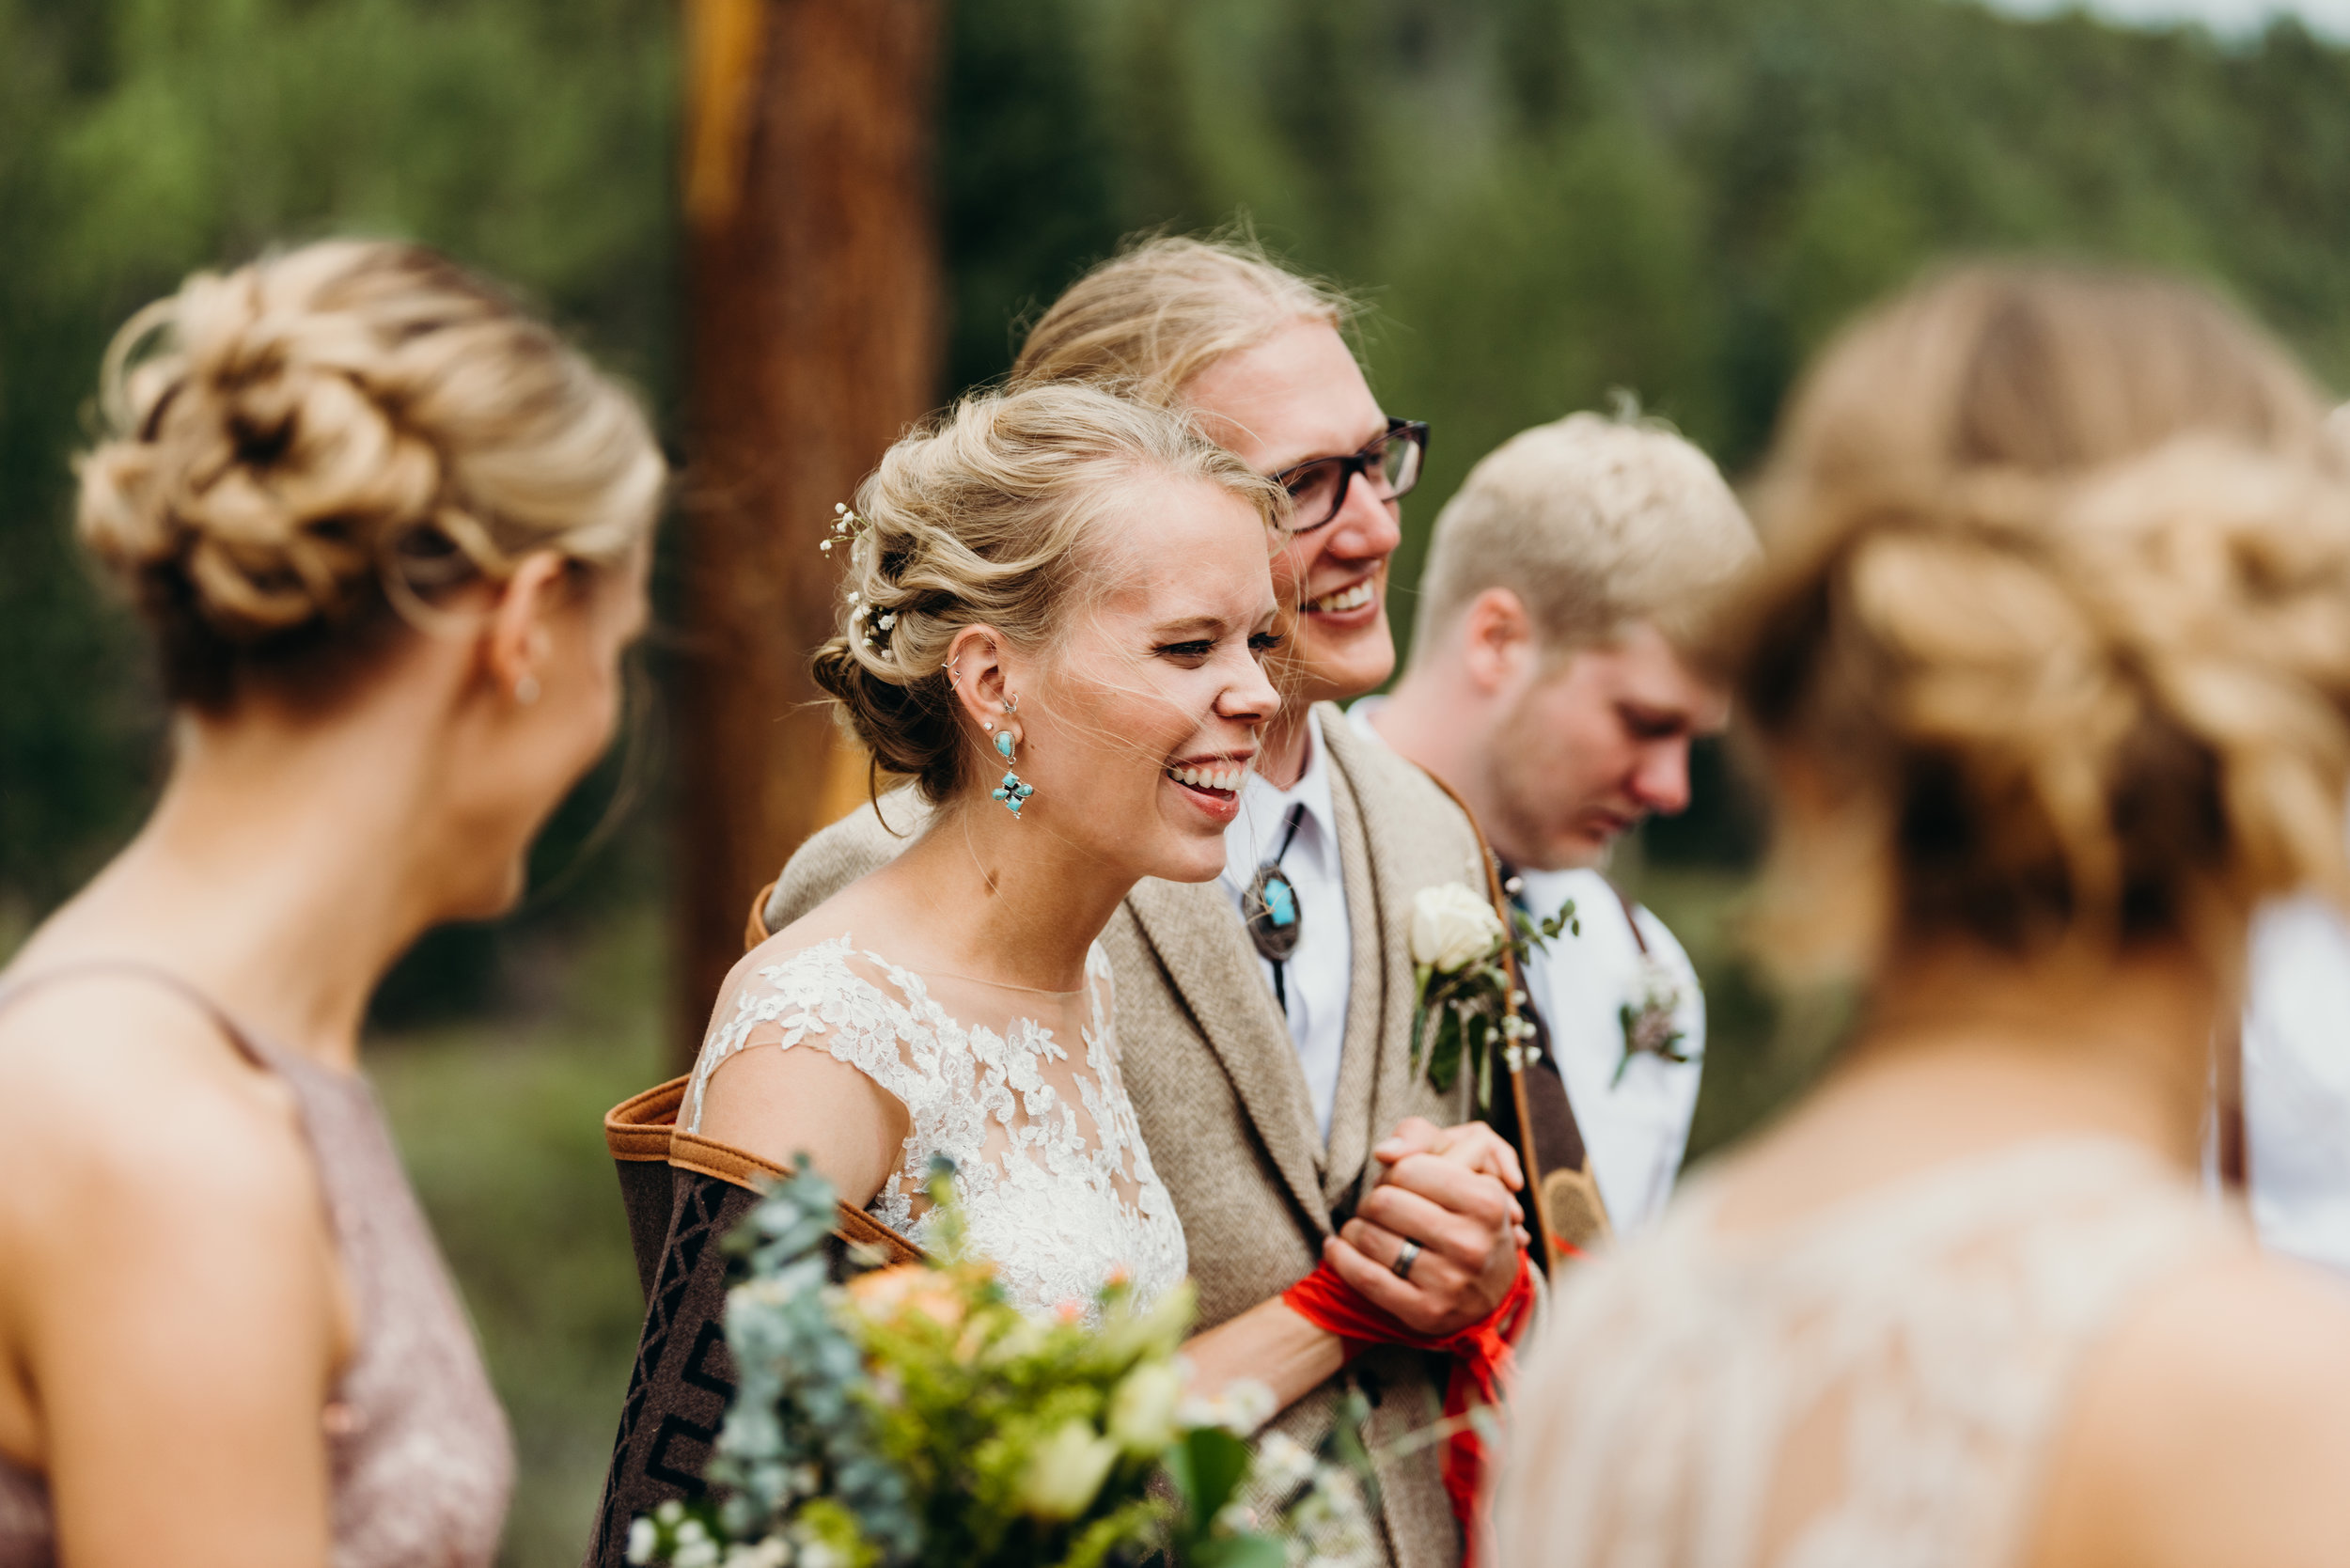 Ceremony / Ally & Jared's Rustic Colorado mountain / diy / summer camp wedding